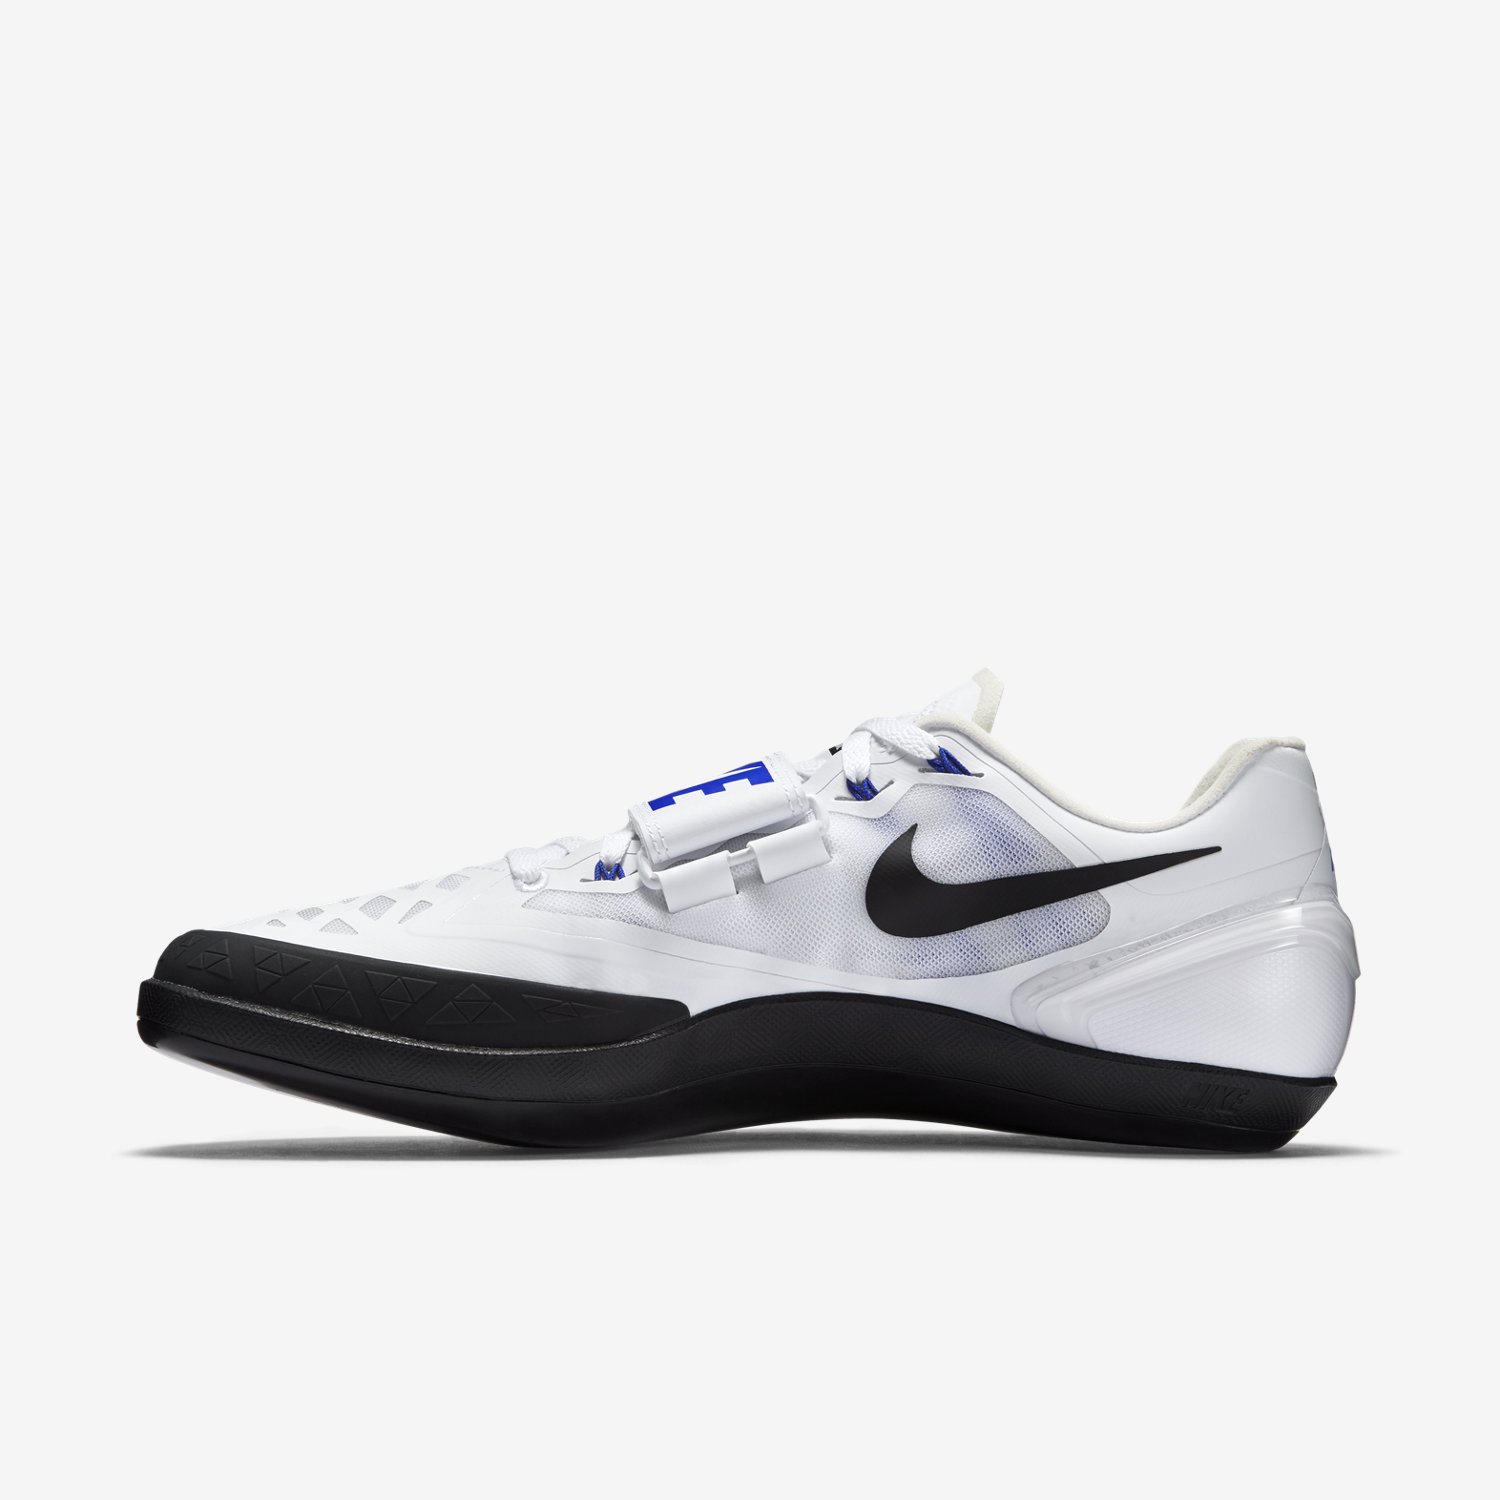 Nike Throwing Shoes In India